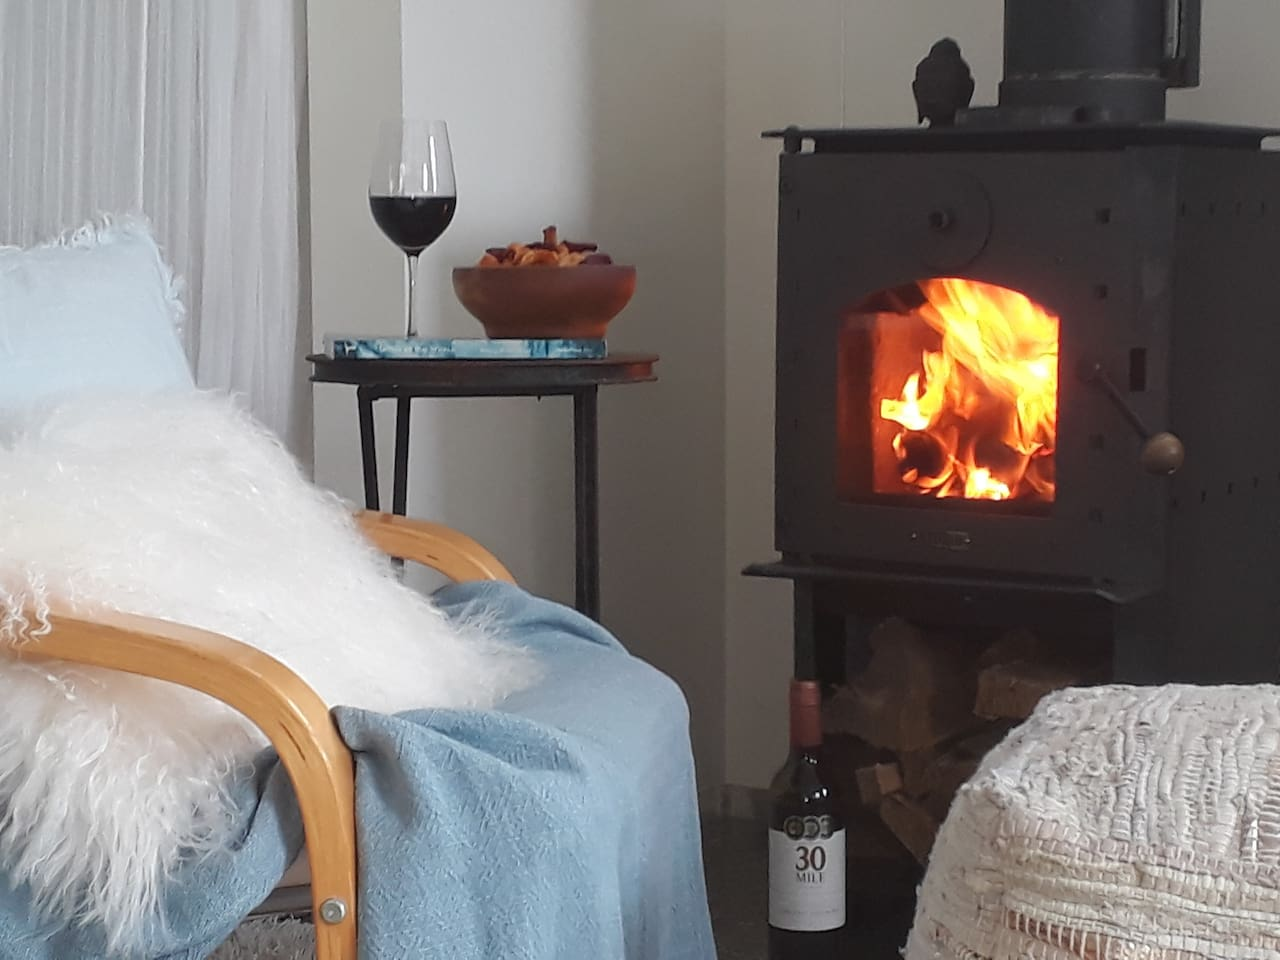 relax with your feet up by the fire on a winters night